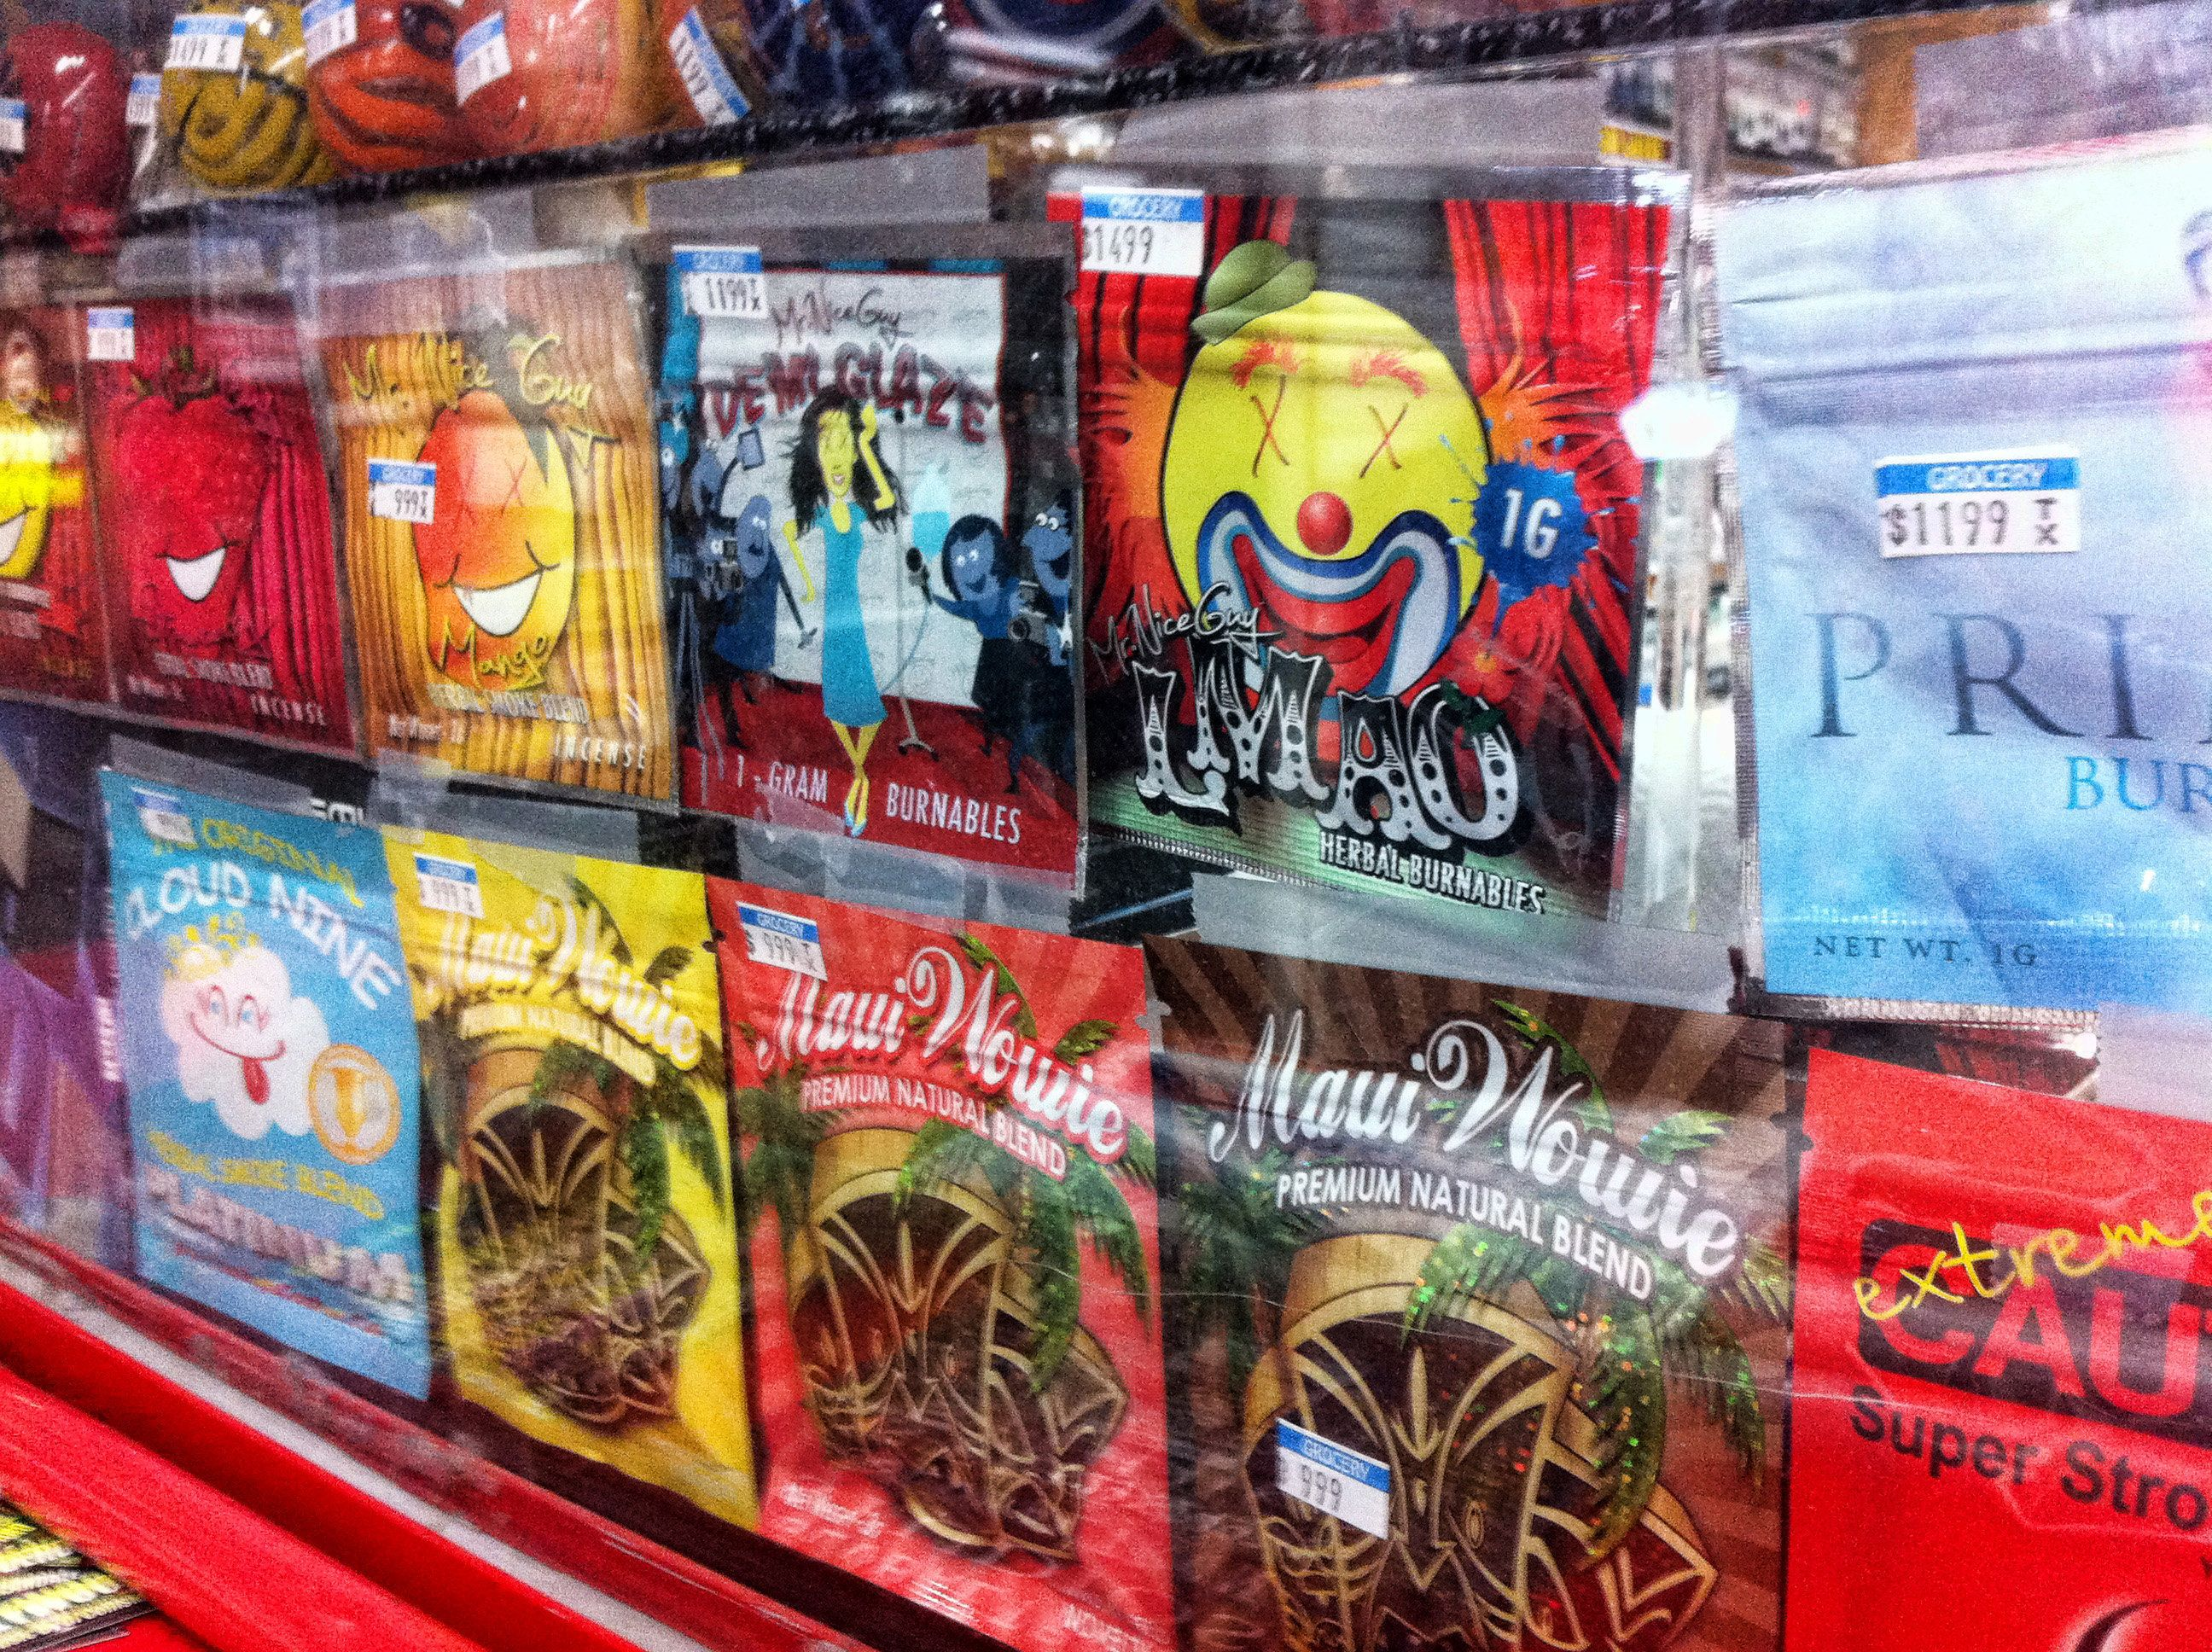 Synthetic marijuana, sold in colorful packages with names like Cloud Nine, Maui Wowie and Mr. Nice Guy, on display behind the